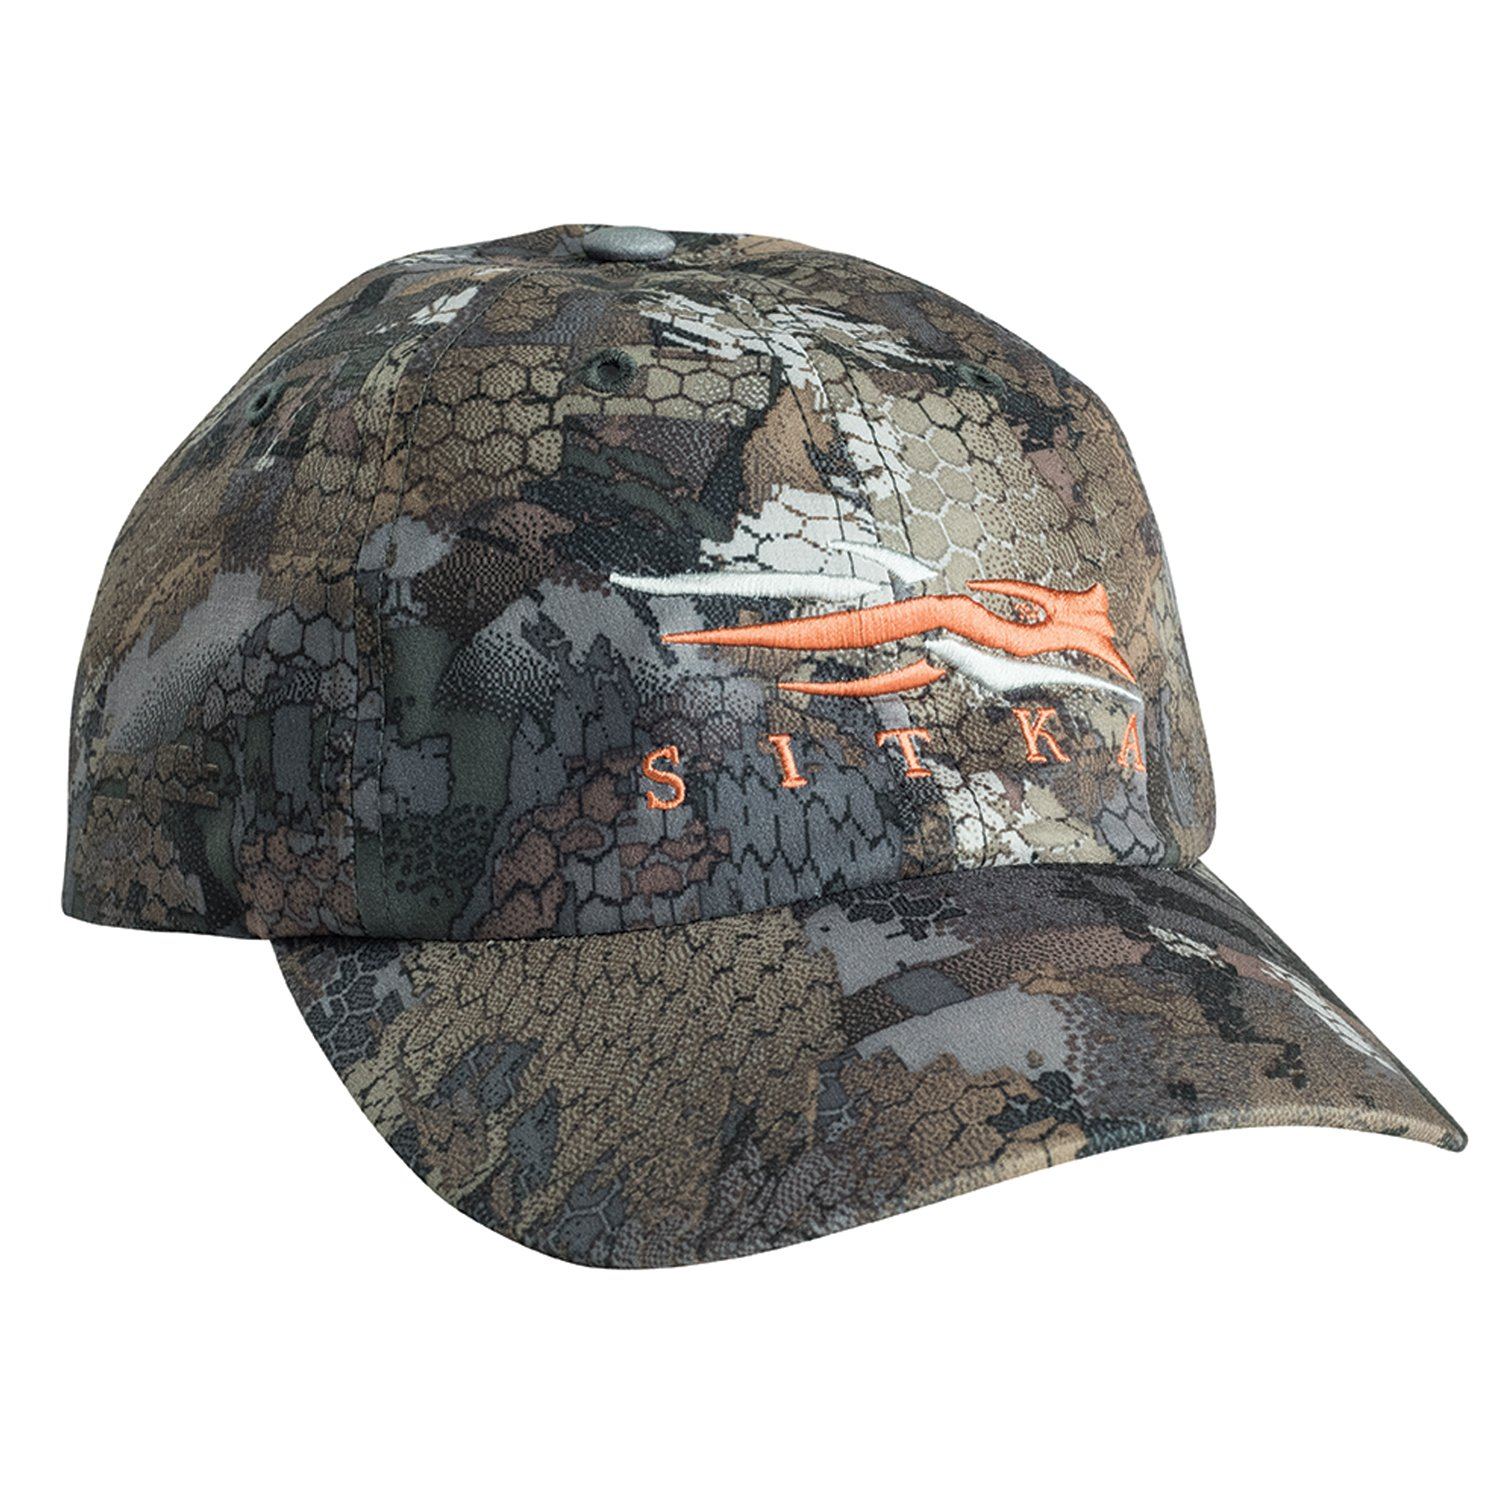 SITKA Gear Cap Optifade Timber One Size Fits All